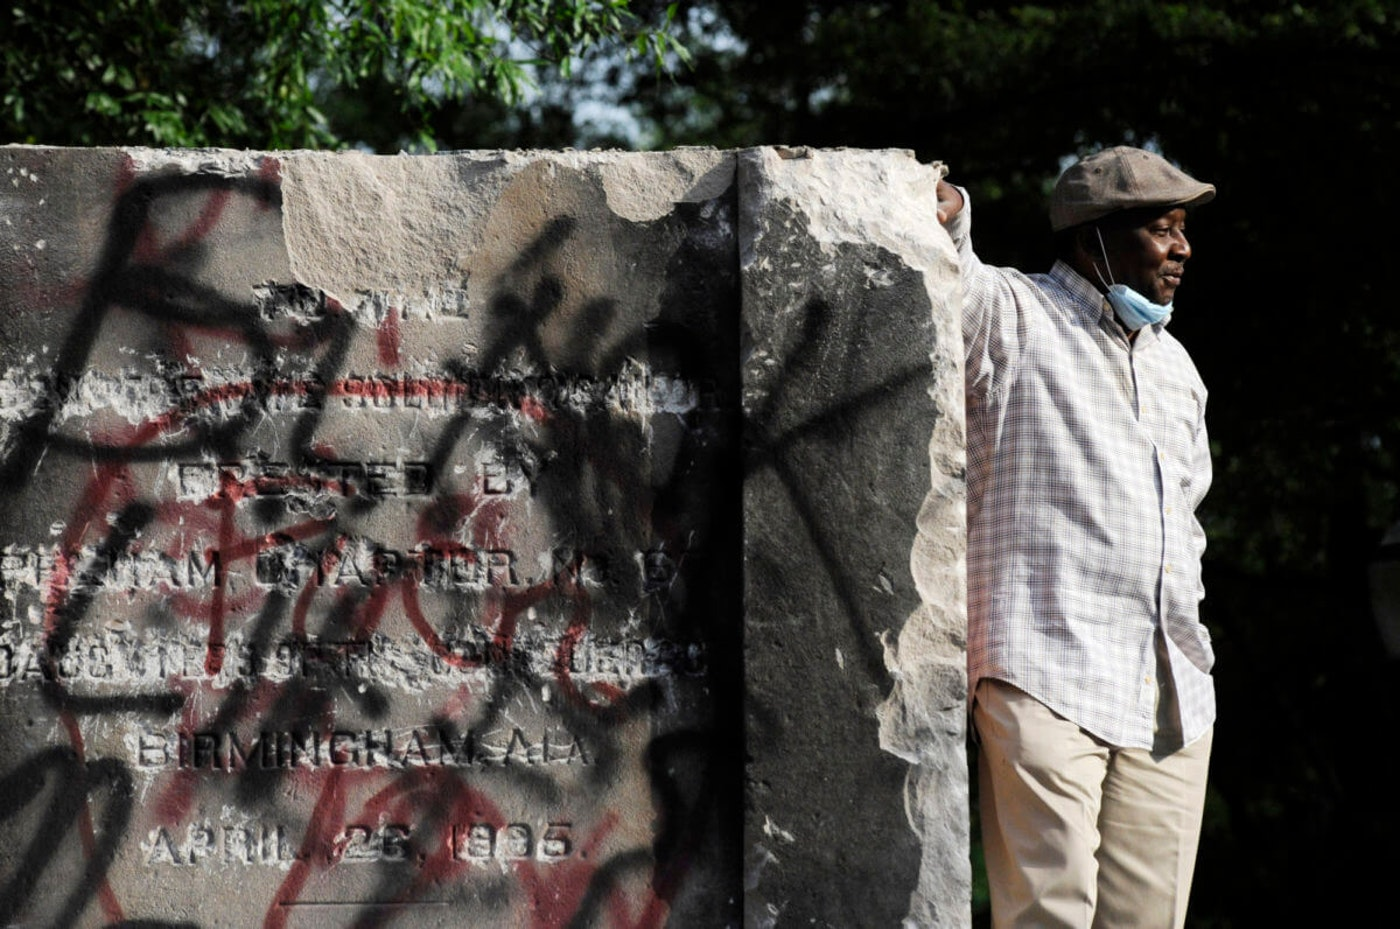 Robert Walker poses for a photograph on the remains of a Confederate memorial that was removed overnight in Birmingham, Ala., on Tuesday, June 2, 2020. (AP Photo/Jay Reeves)